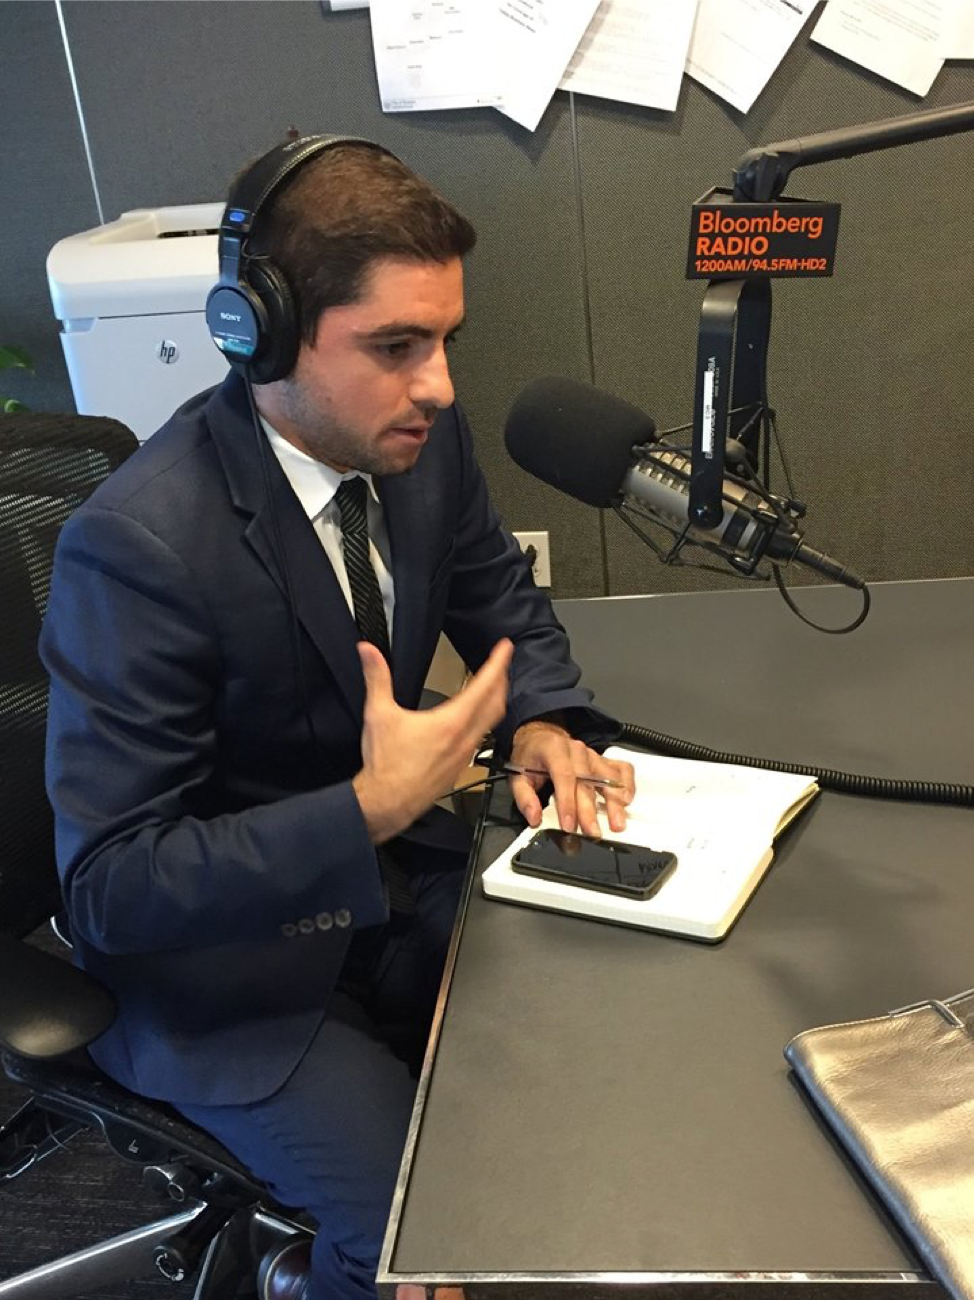 Sam gave an interview on the current state of higher education on Bloomberg Radio with President Gloria Larson (Bentley University)